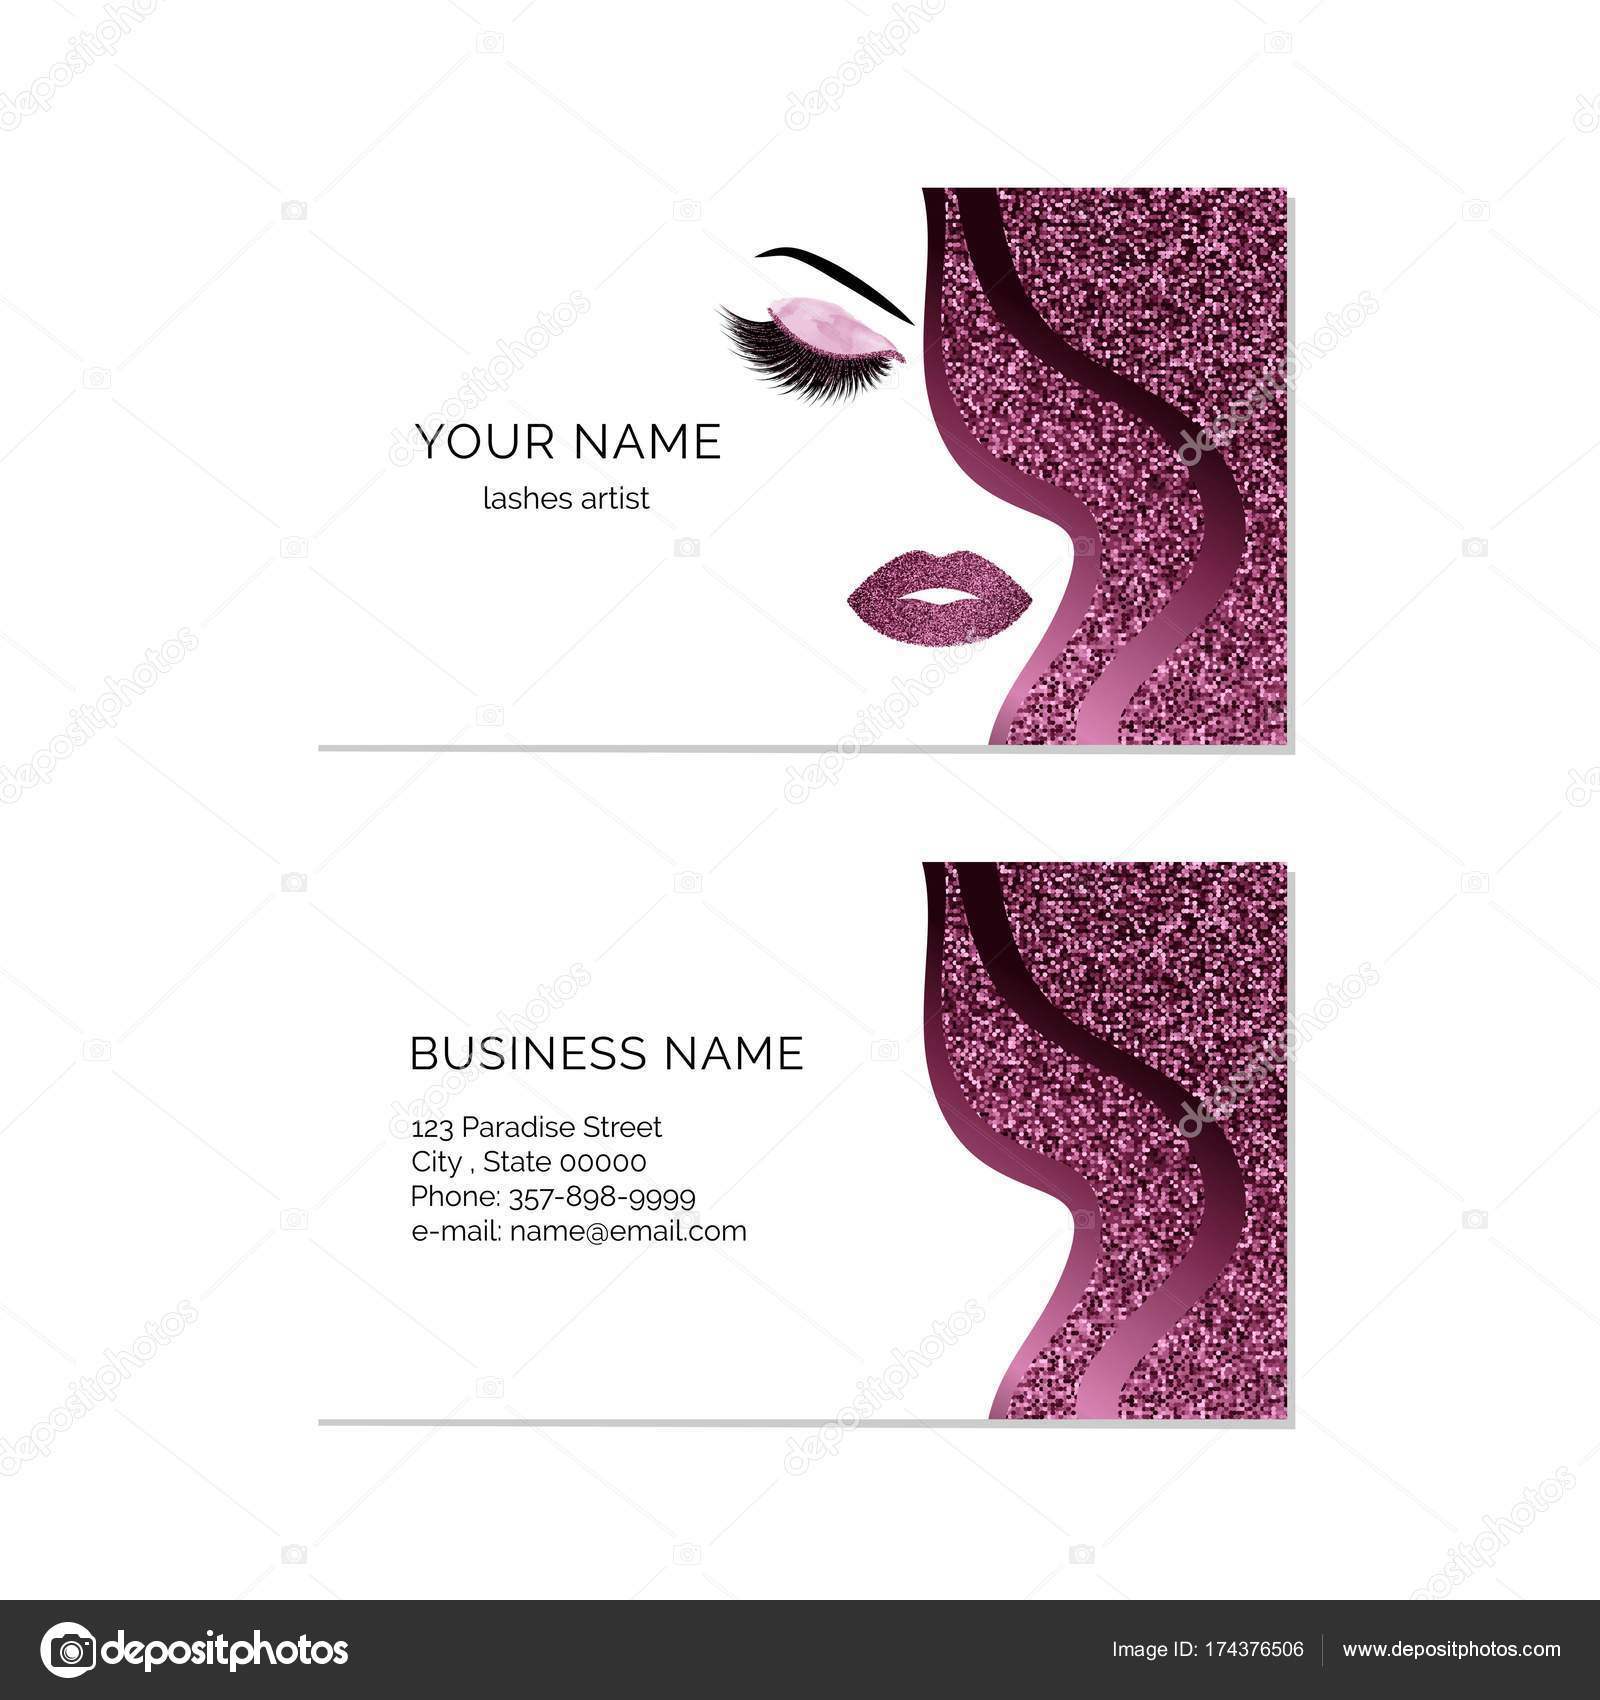 Makeup artist business card vector template — Stock Vector ...